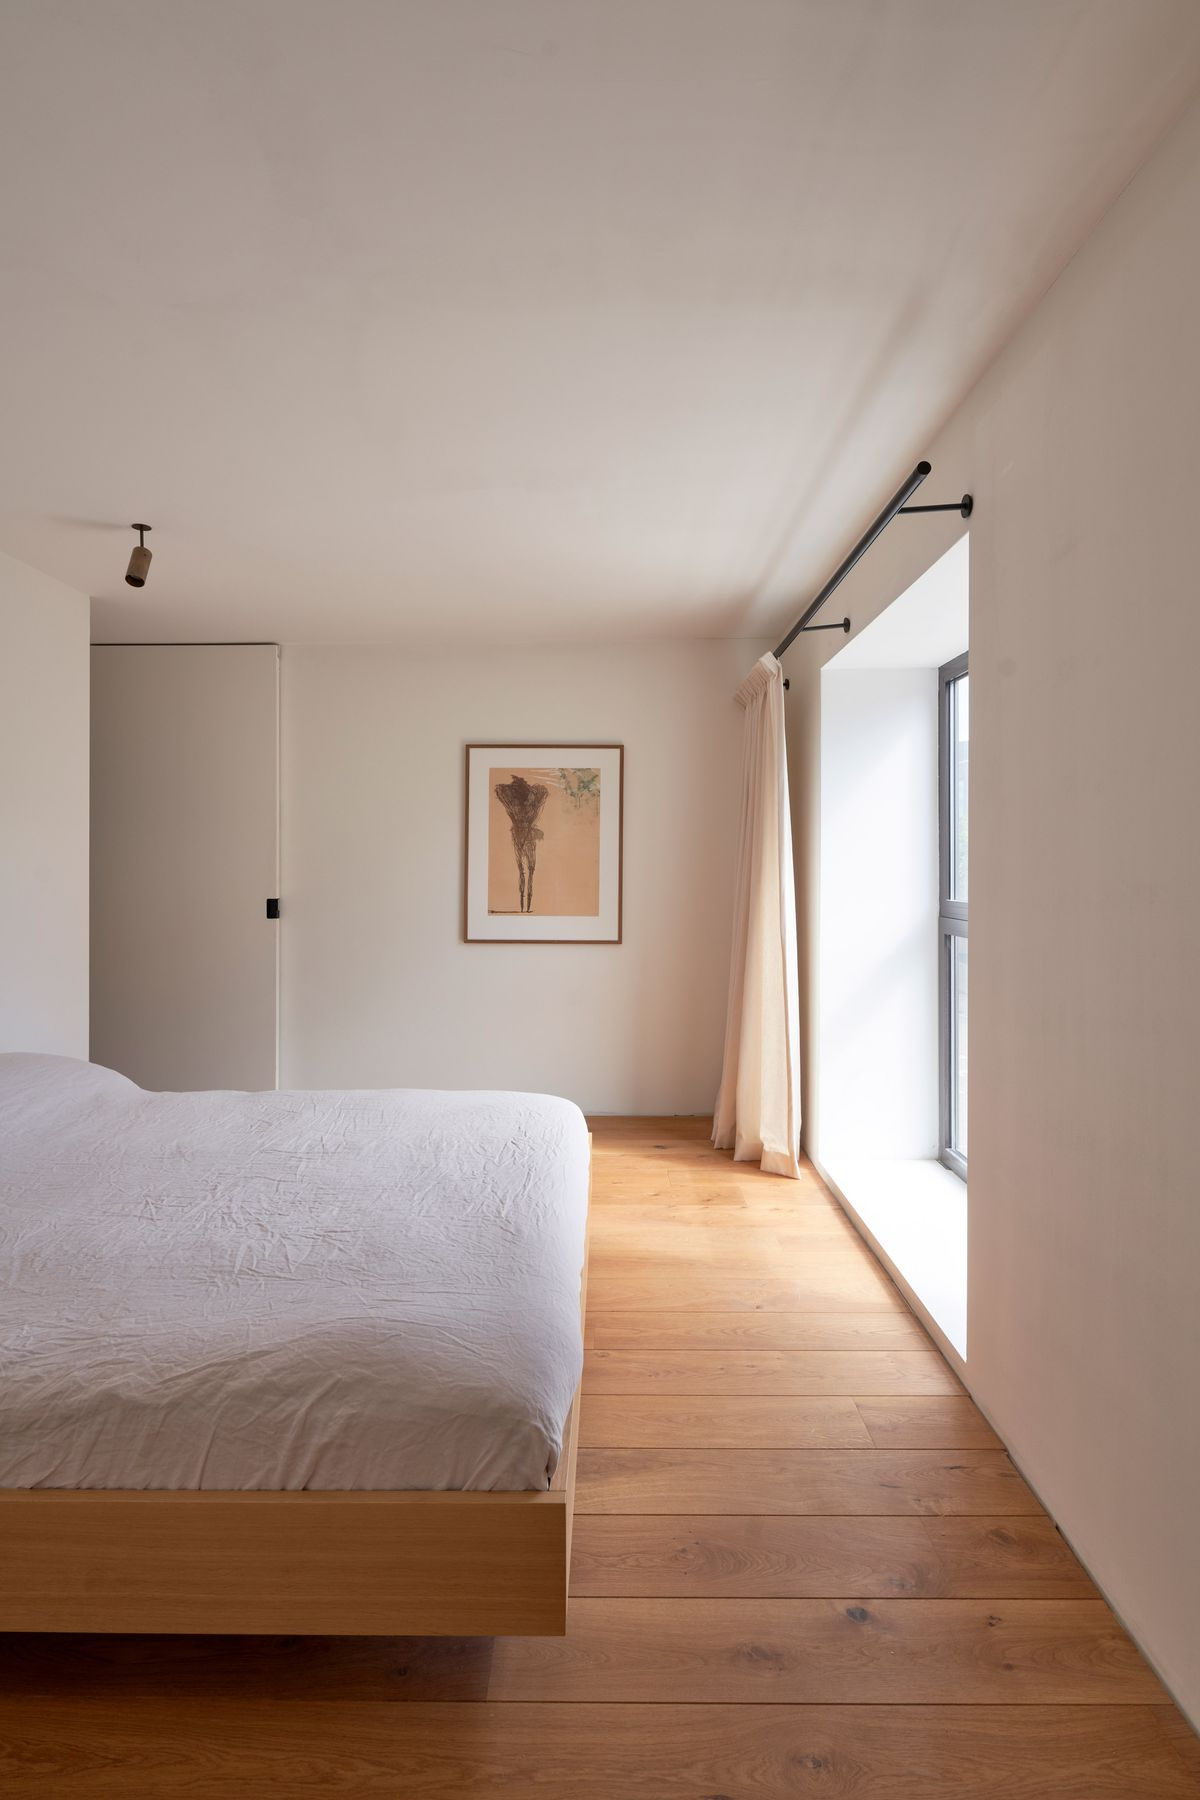 Bedroom with wood floors and white walls